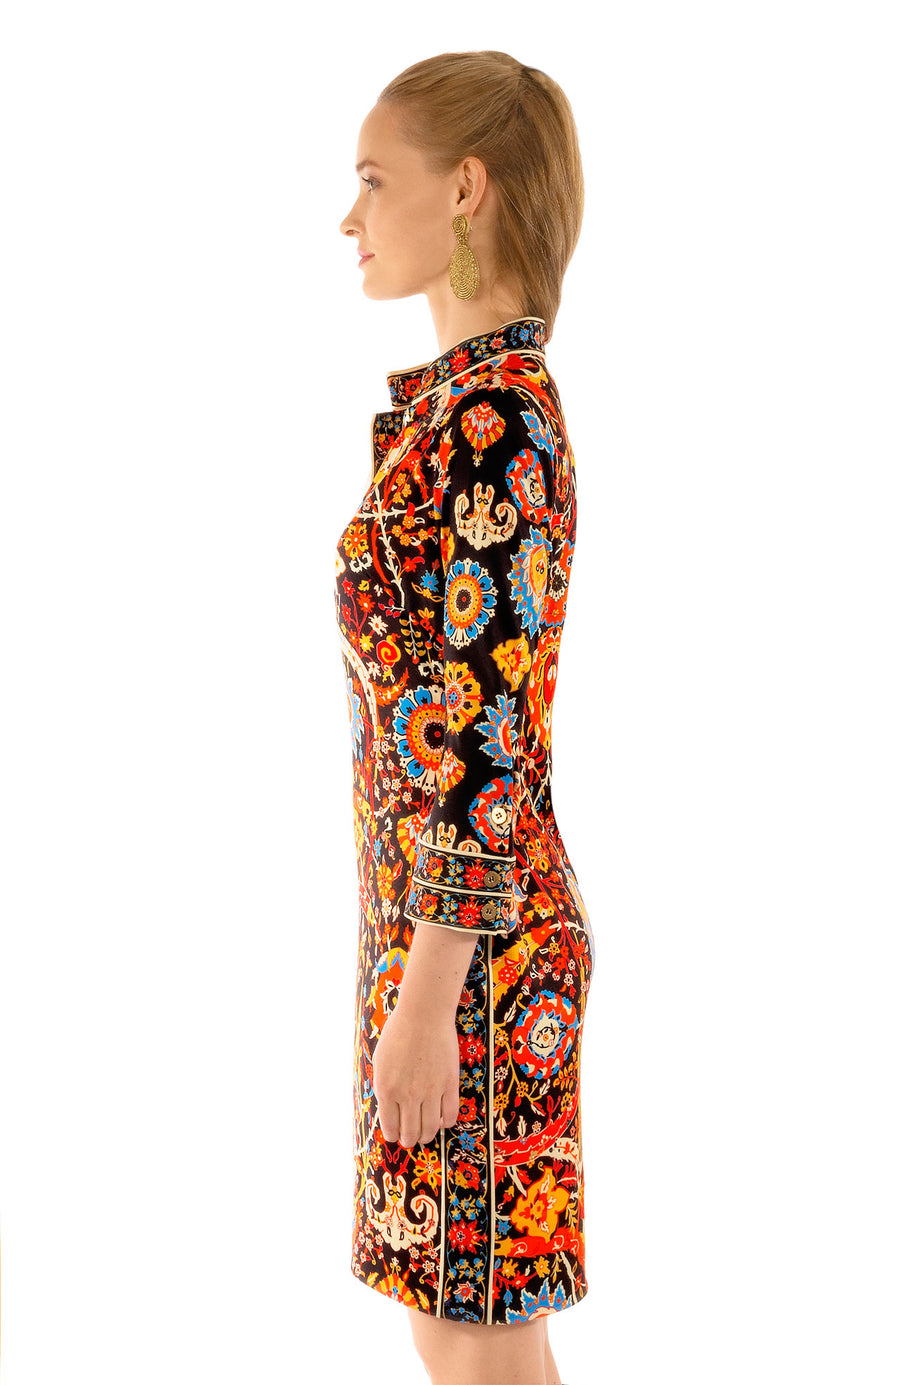 Gretchen Scott Magic Carpet Mandarin Dress